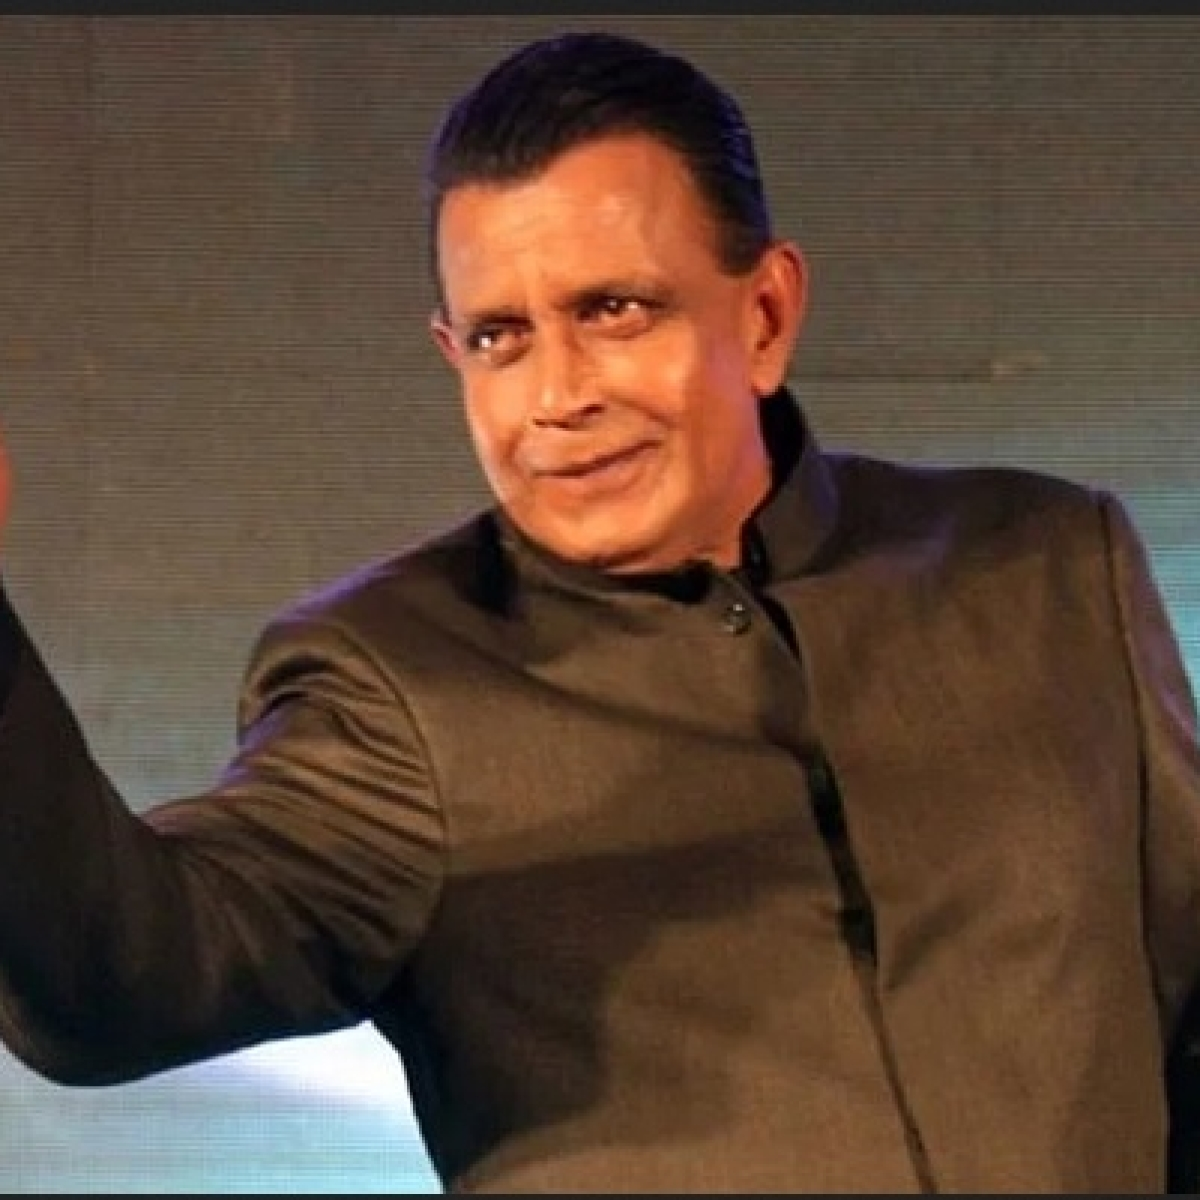 Mithun Chakraborty likely to join BJP during PM Modi's rally in Kolkata on March 7: Sources